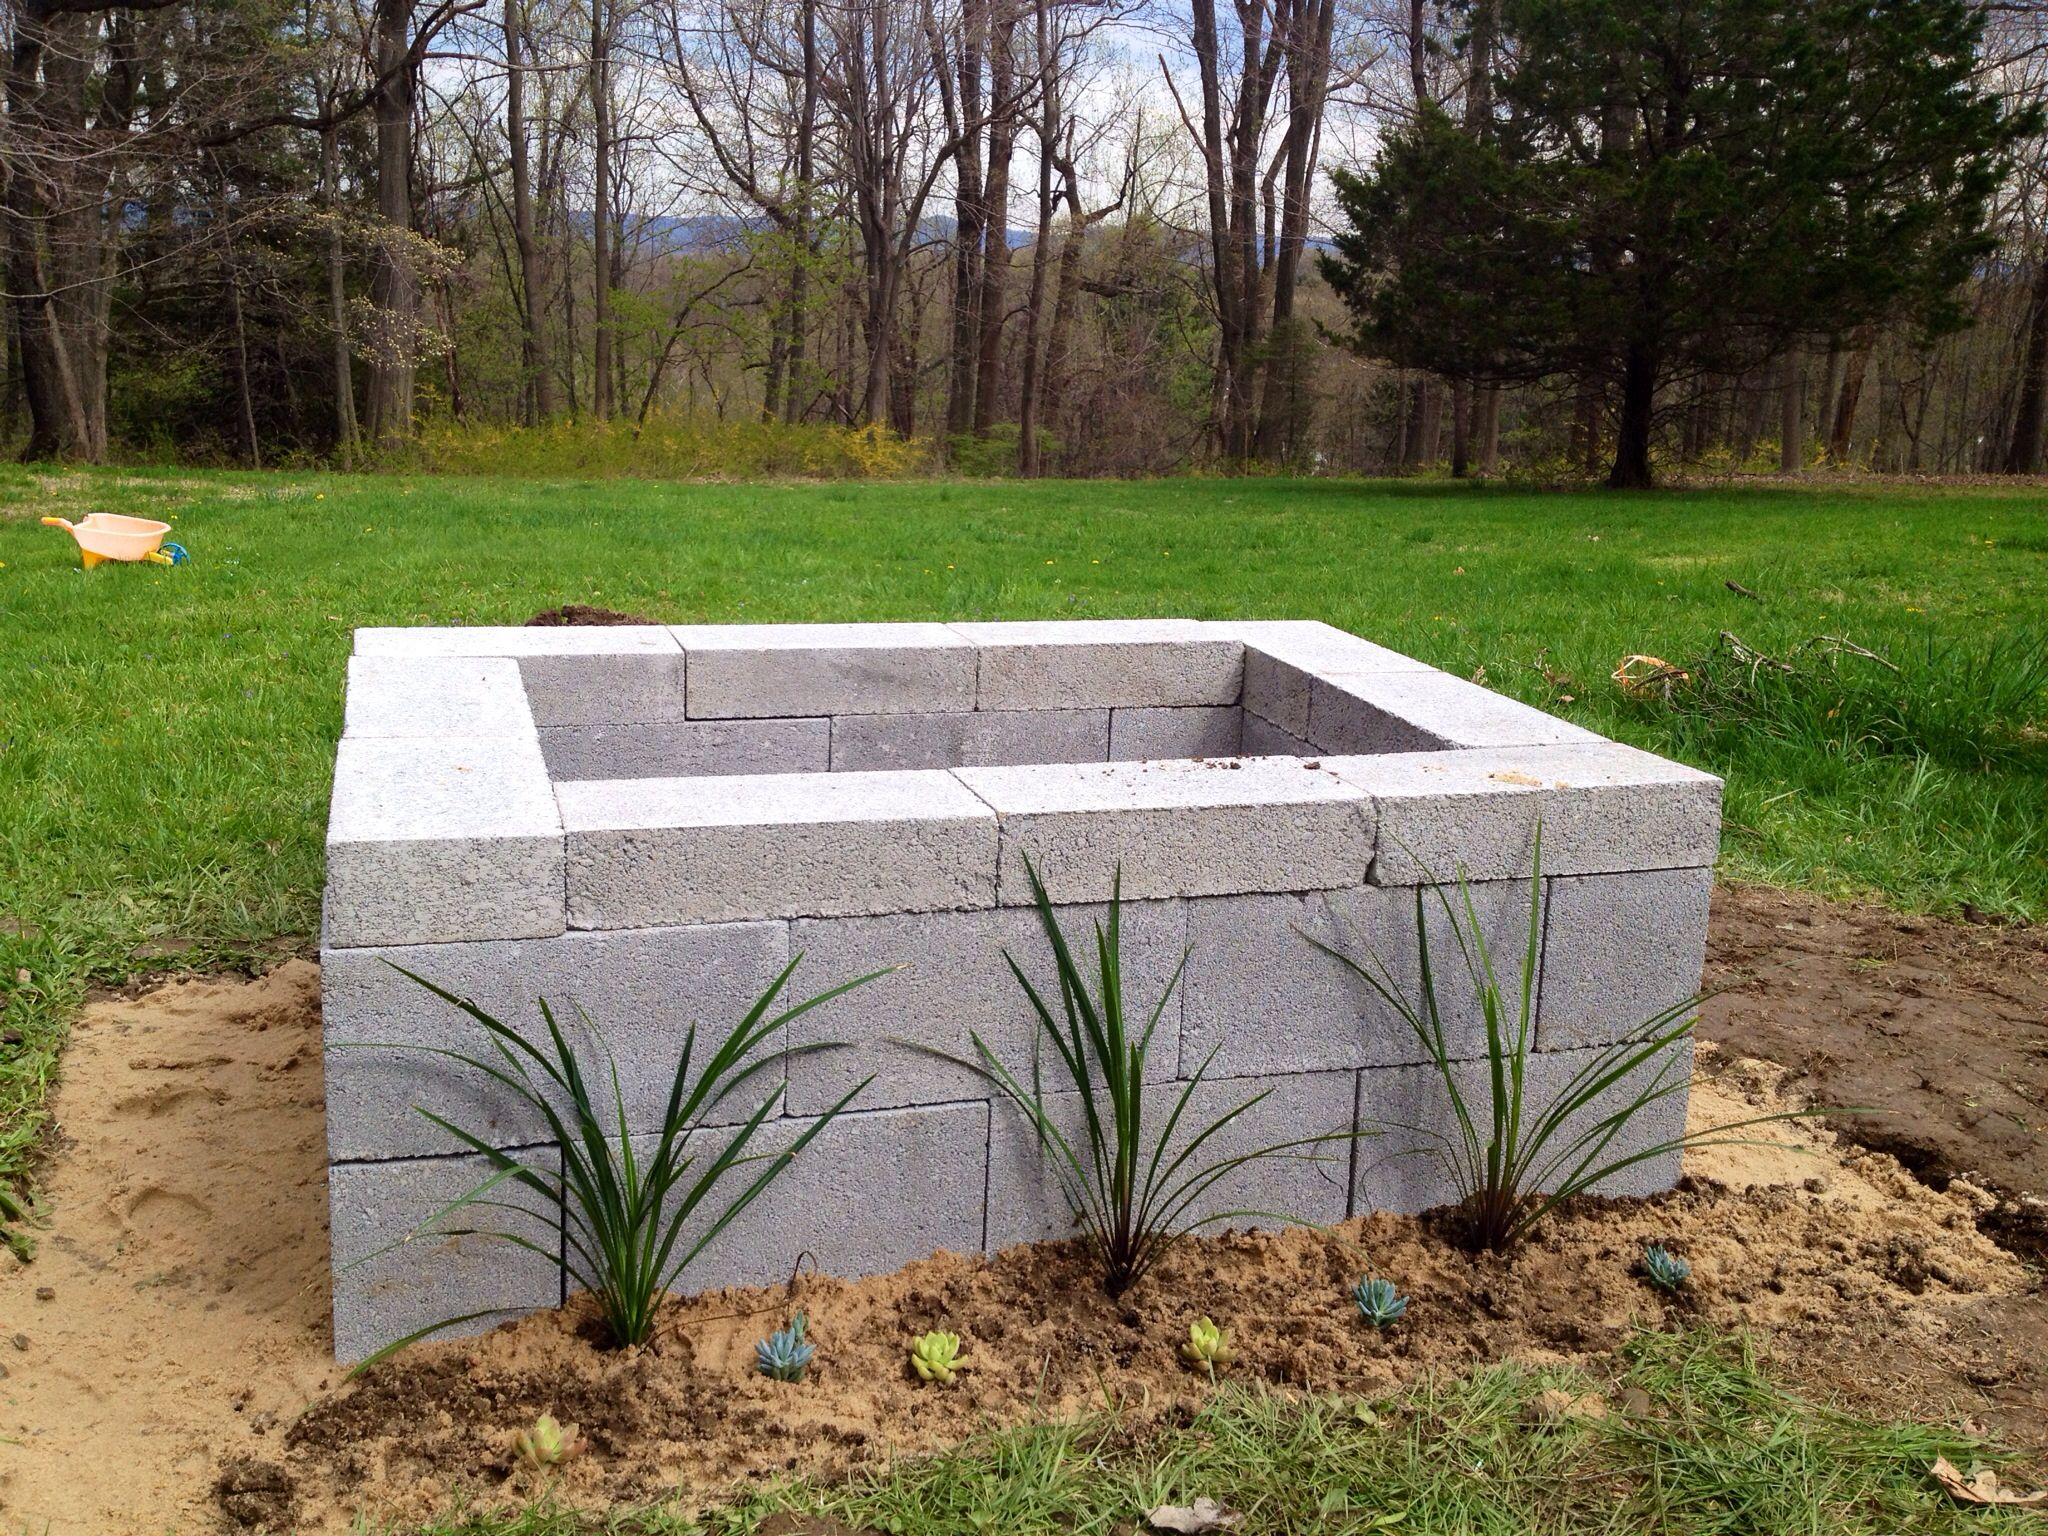 December 2013 - Fire pit done! It is three levels of cement block ...